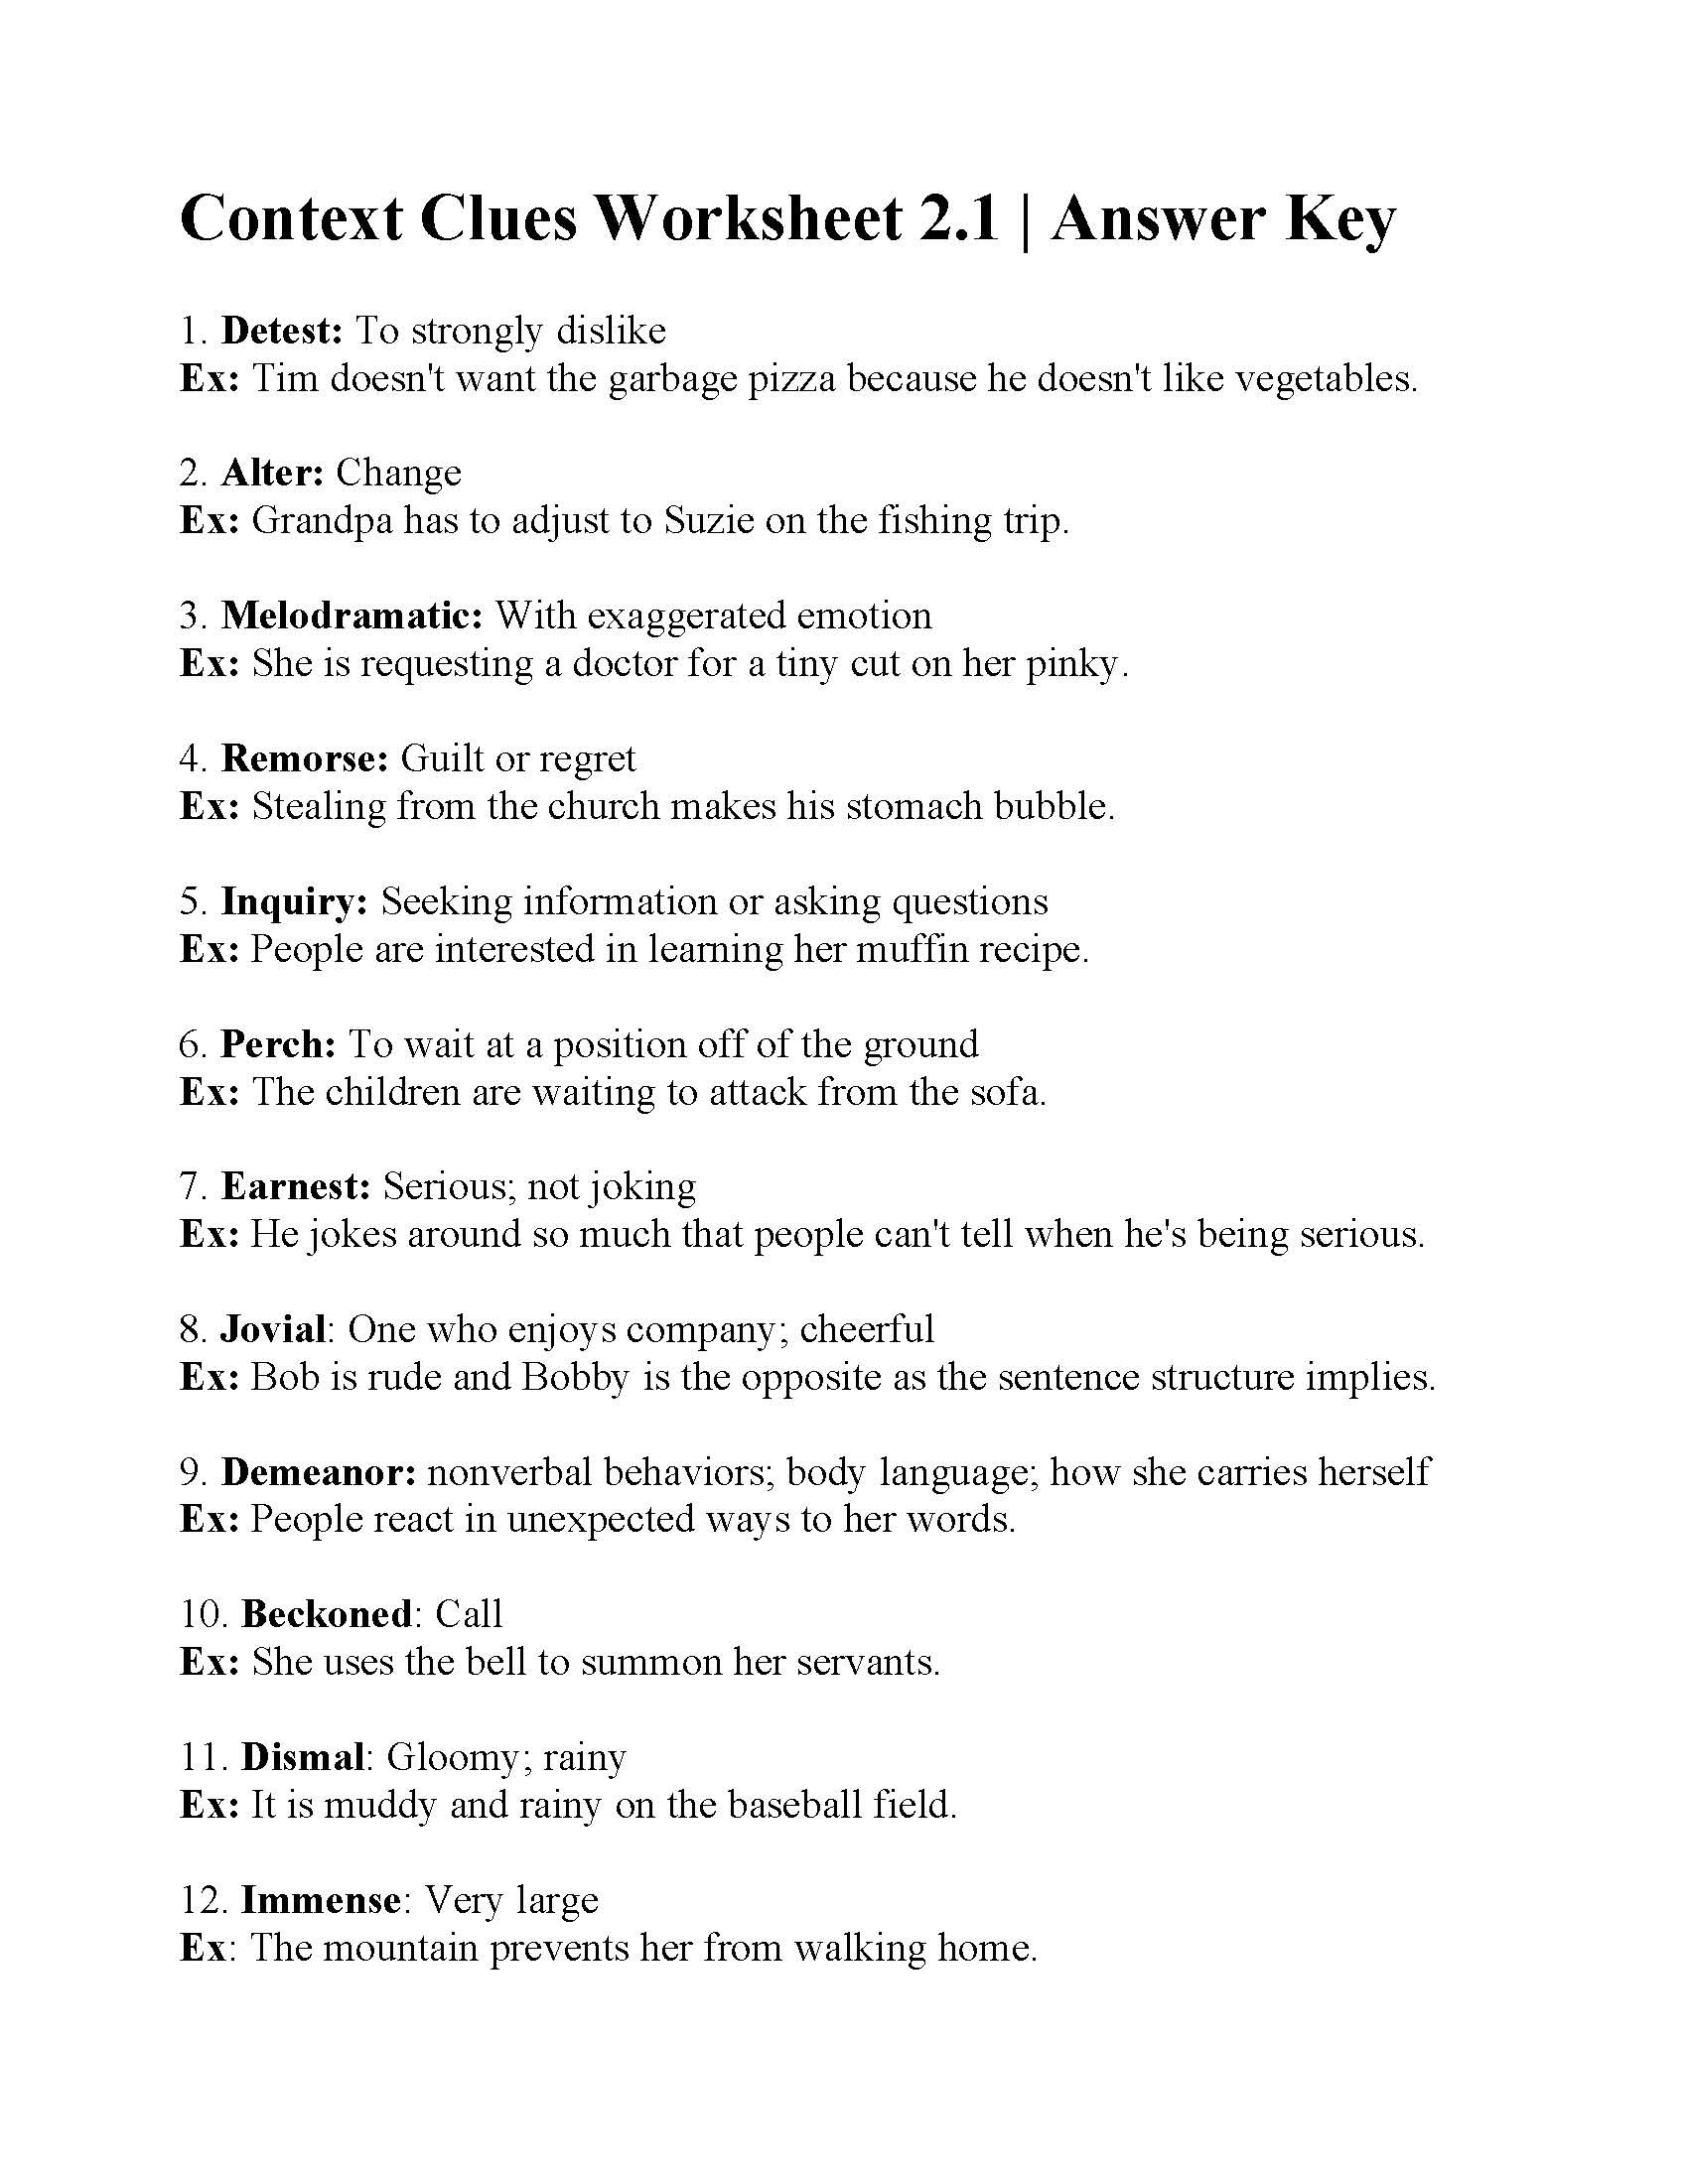 Reading Context Clues Worksheets